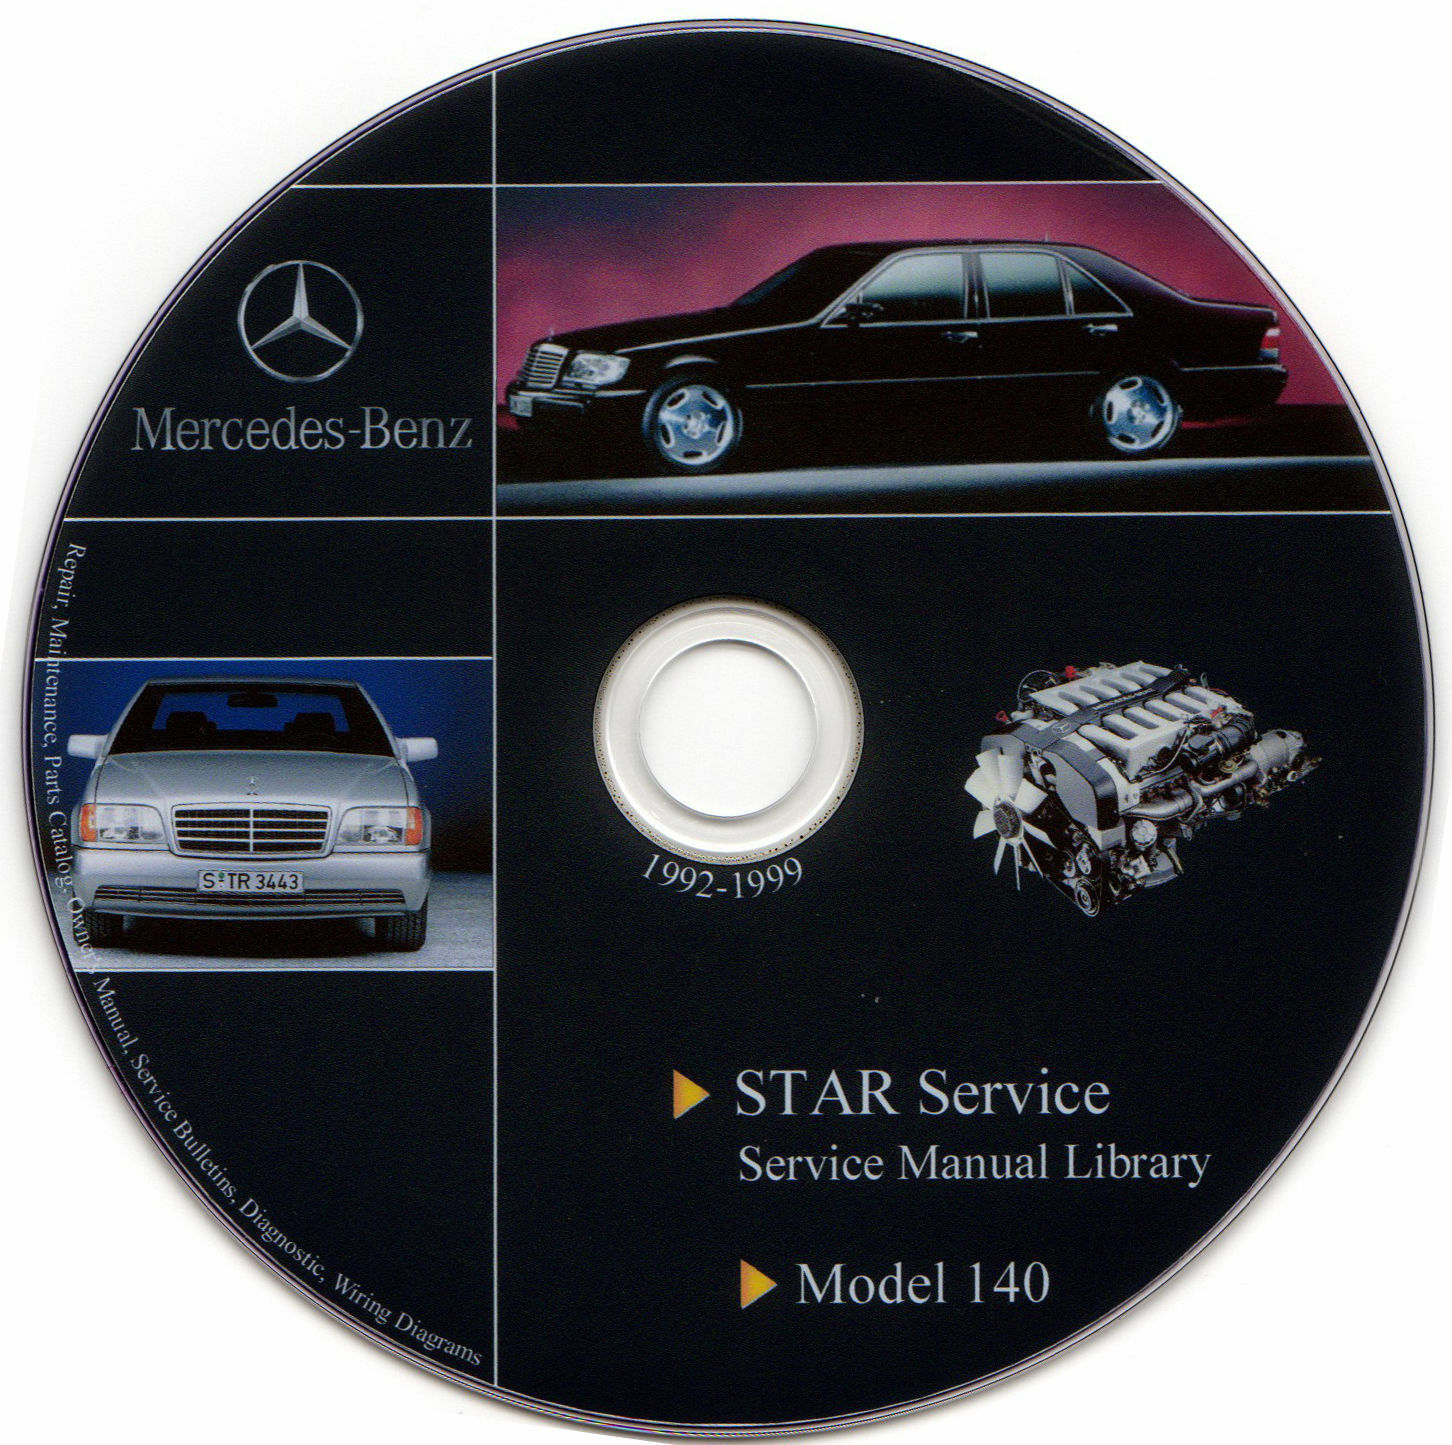 Mercedes Benz W140 Service Manual Repair Workshop S500 S600 S420 CL500 500  SEL 1 of 12 See More